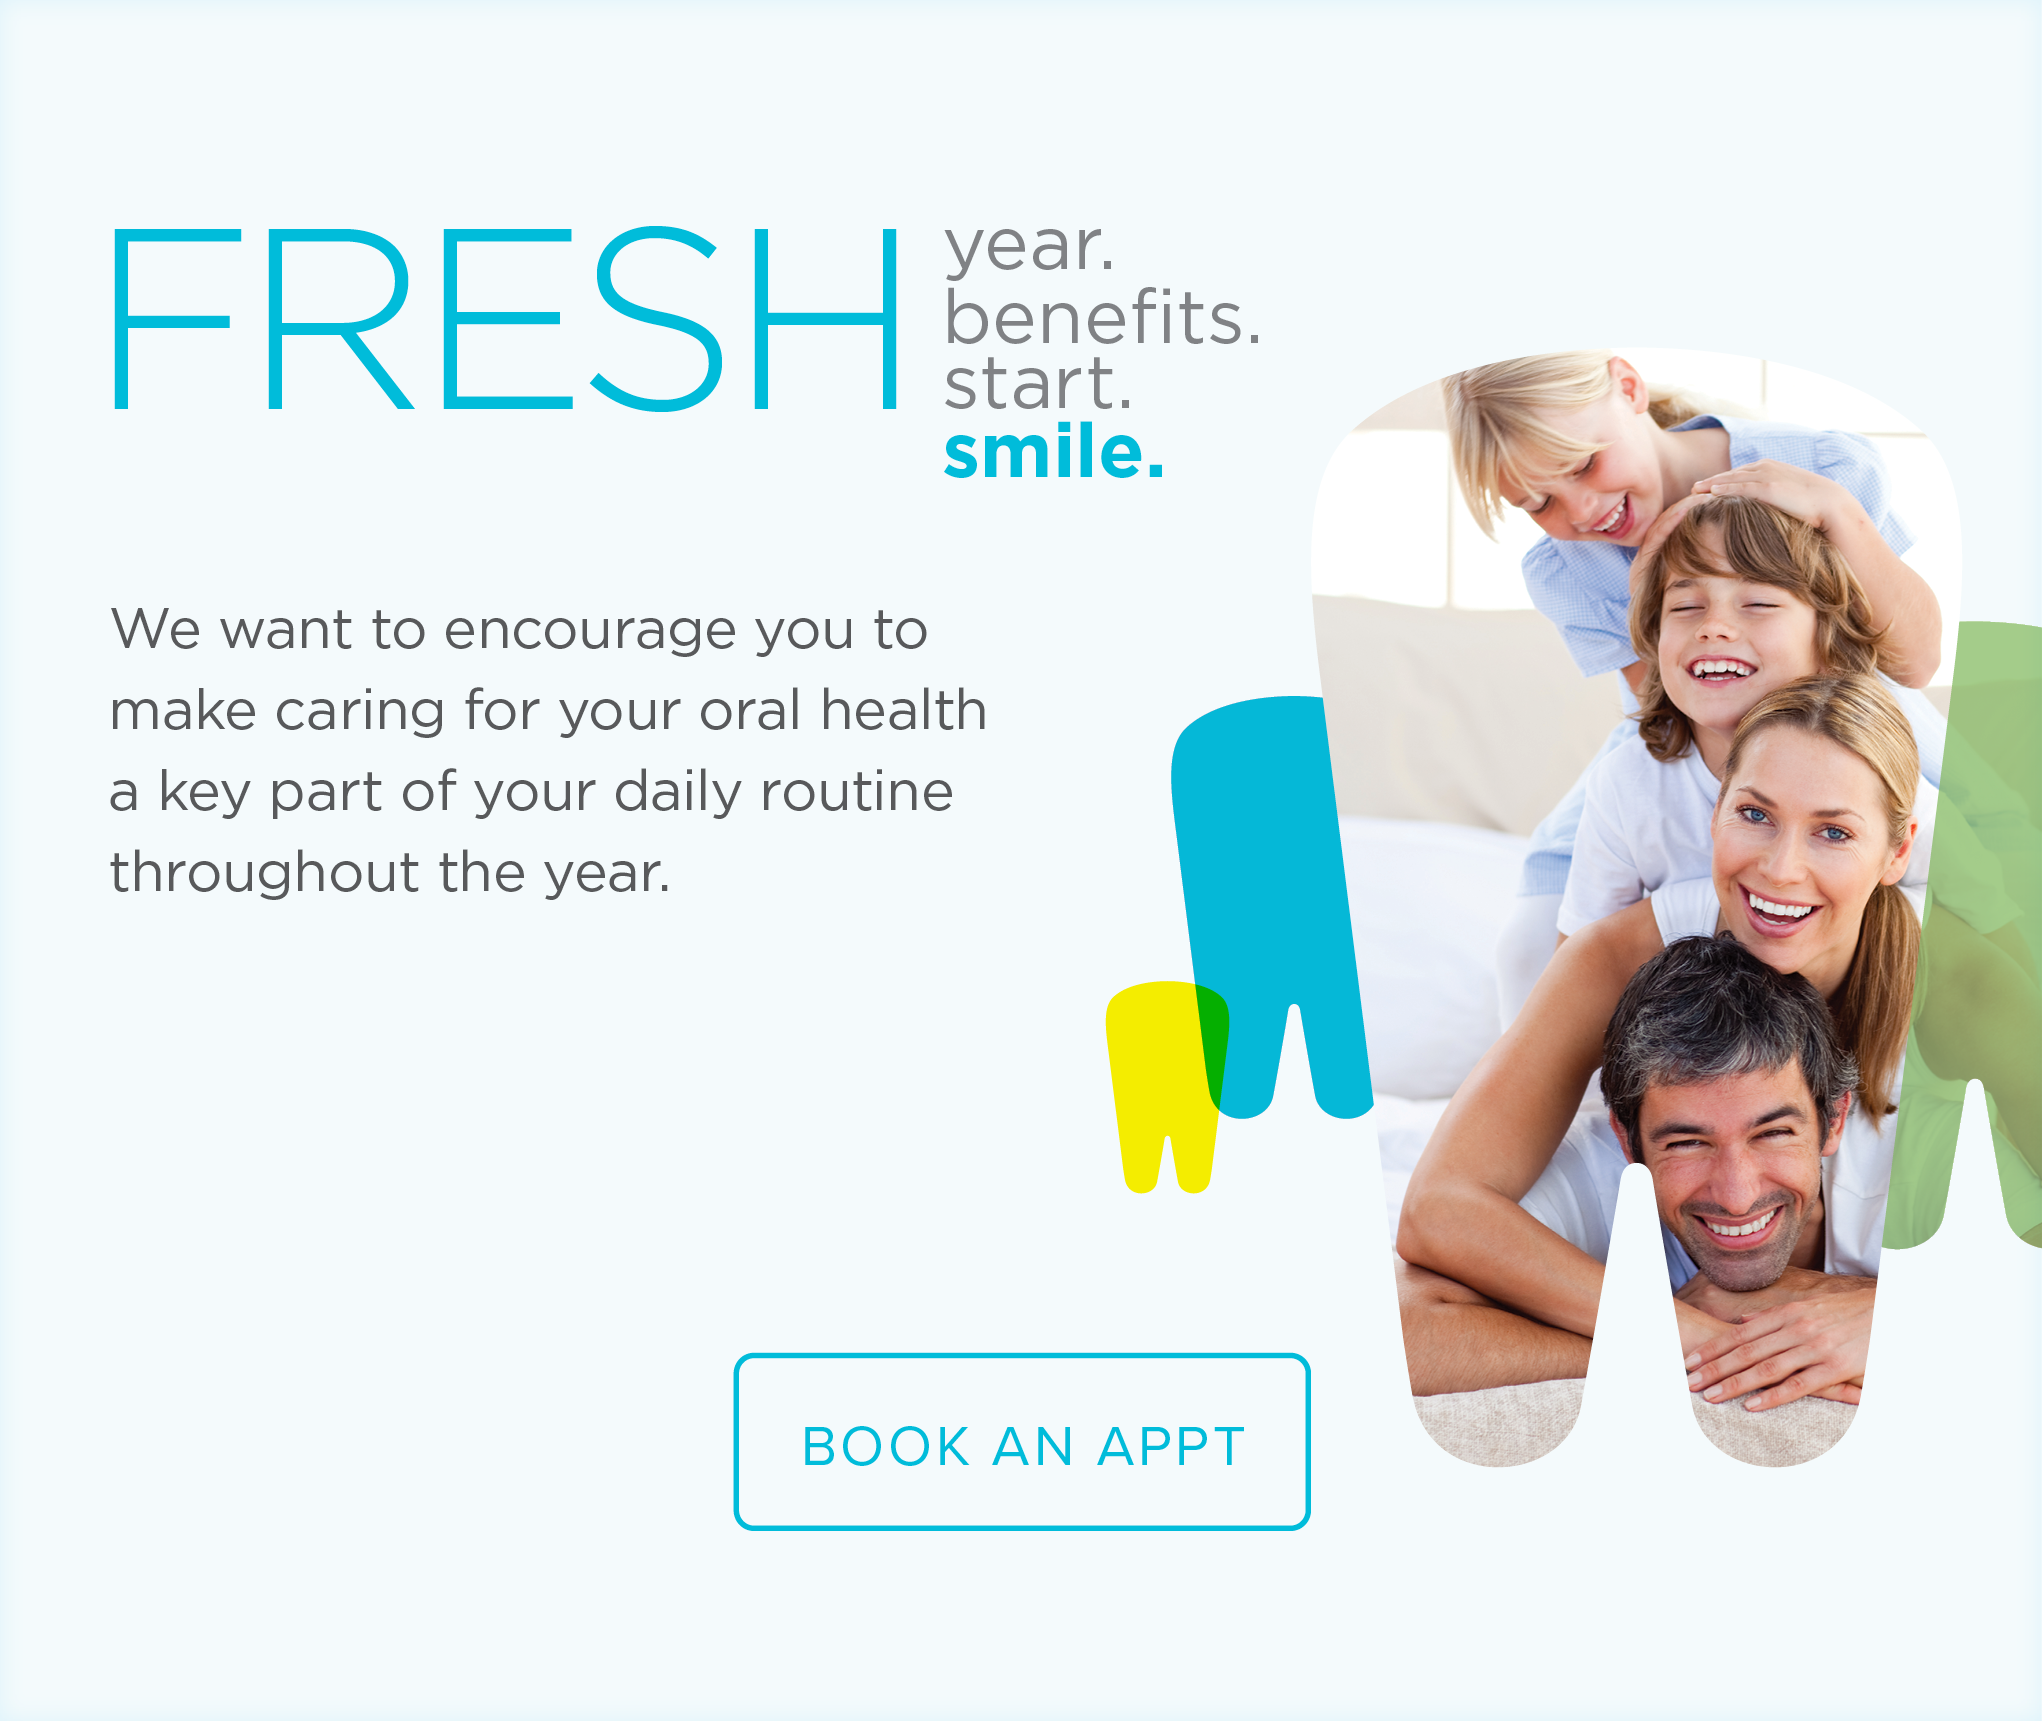 South River Dental Group and Orthodontics - Make the Most of Your Benefits